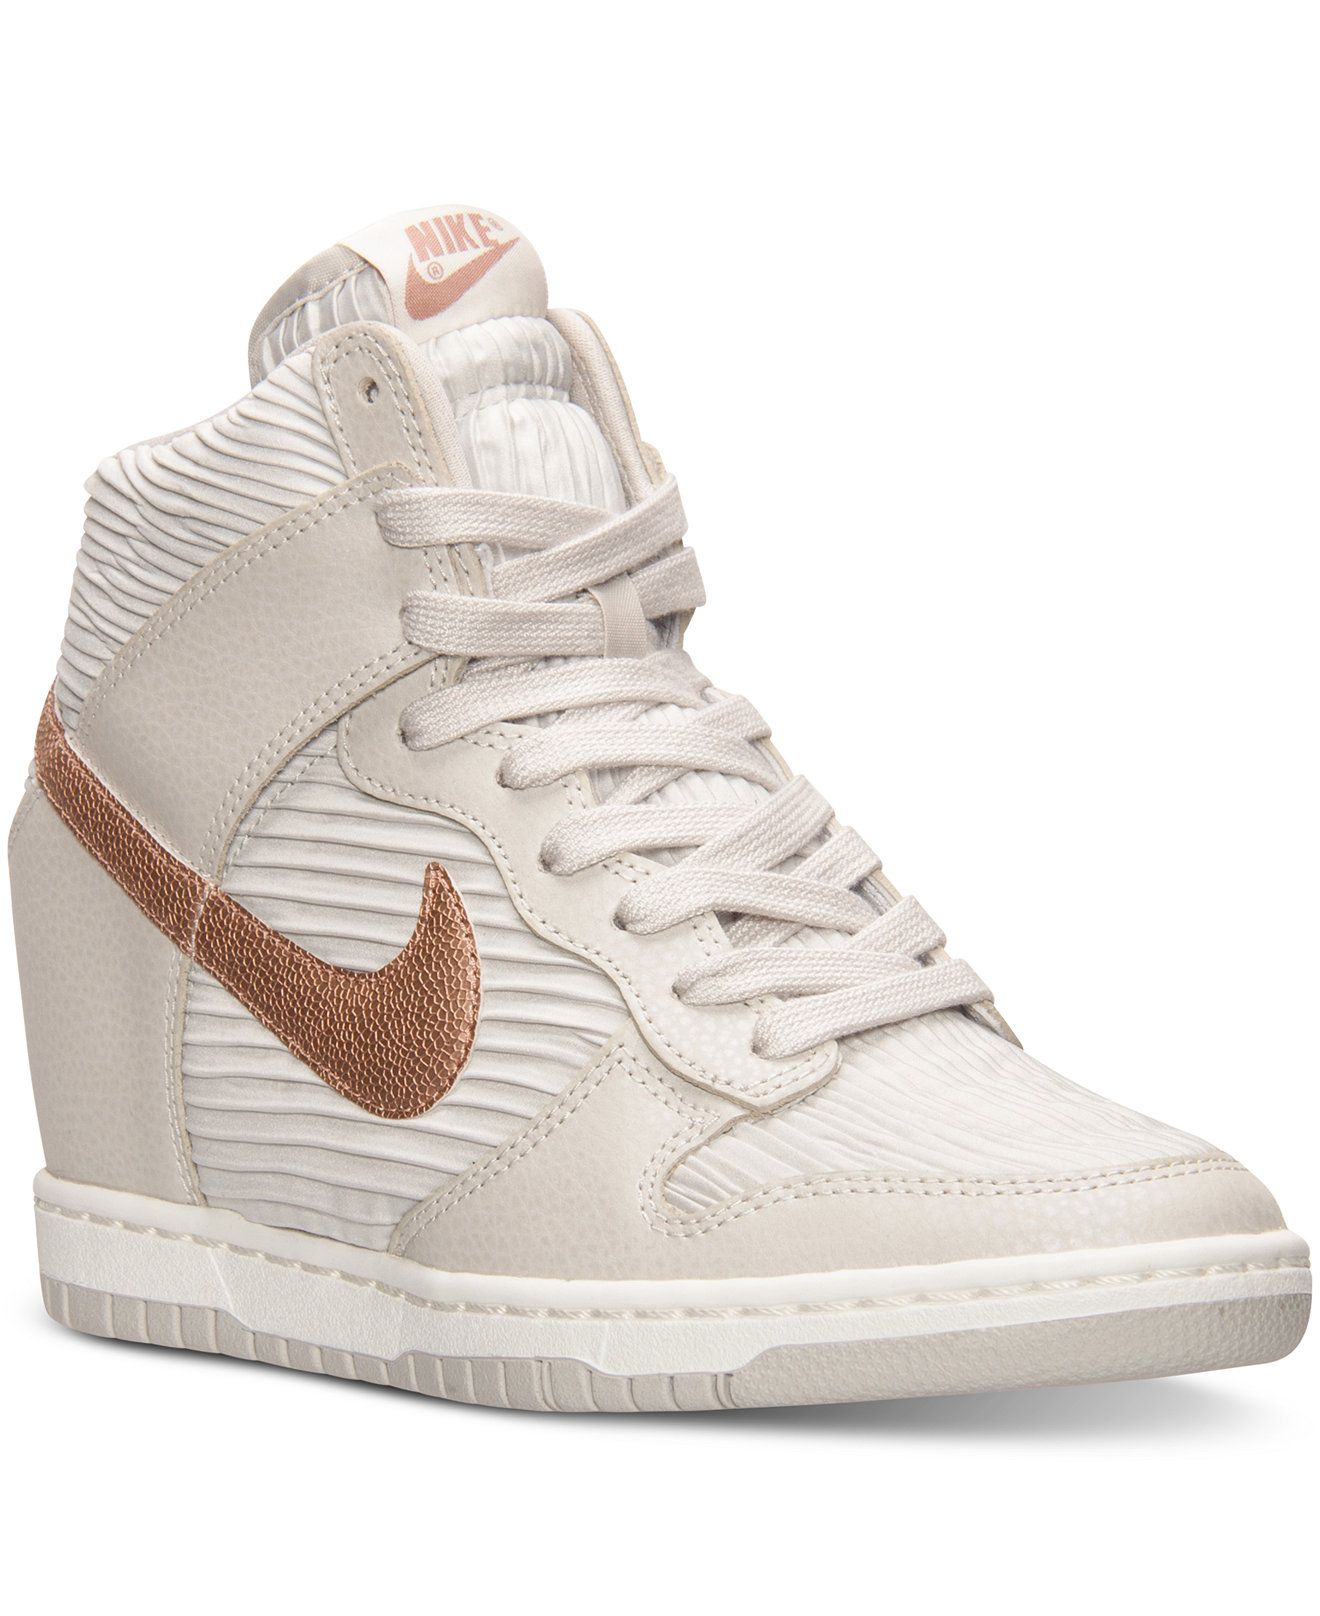 Nike Women s Dunk Sky Hi Casual Sneakers from Finish Line - Finish Line  Athletic Shoes - Shoes - Macy s 5b6a98cbe590